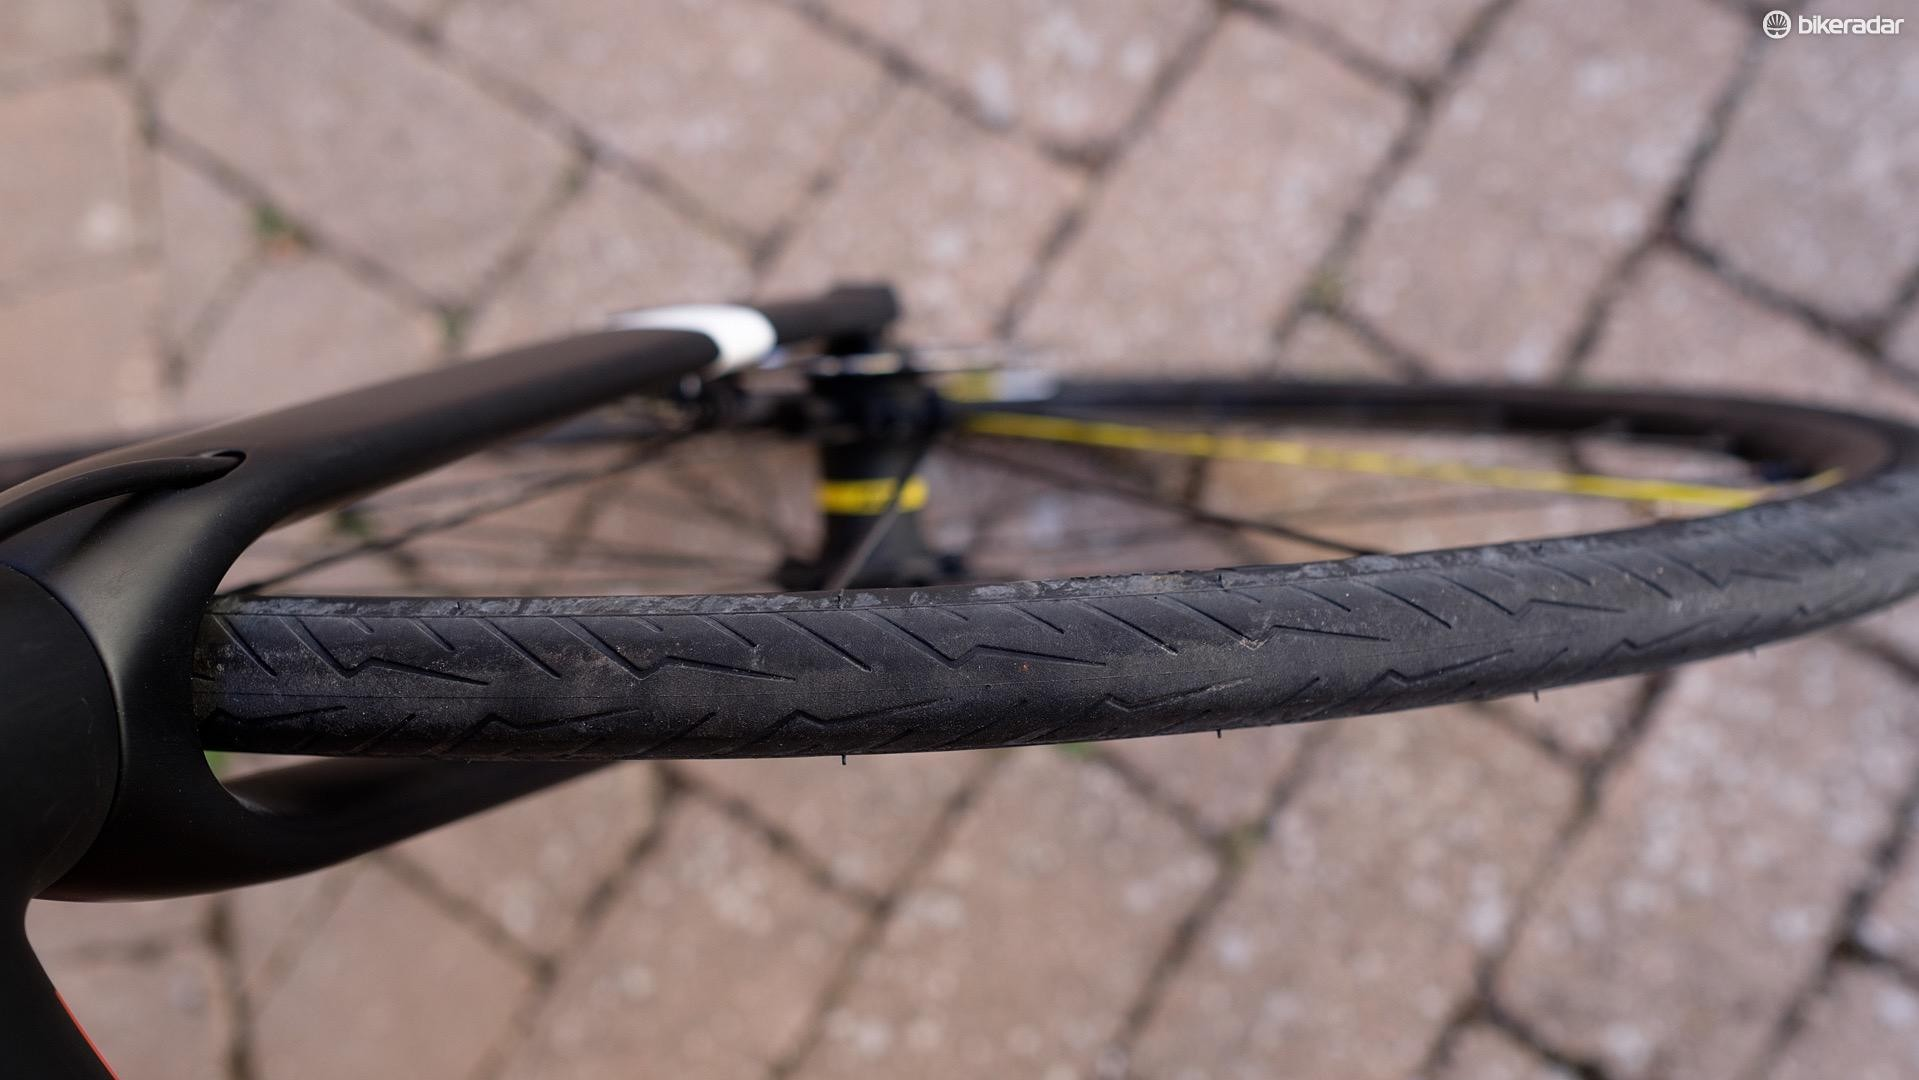 The tread pattern will looks familiar to anyone familiar with Pirelli's existing bicycle tyres